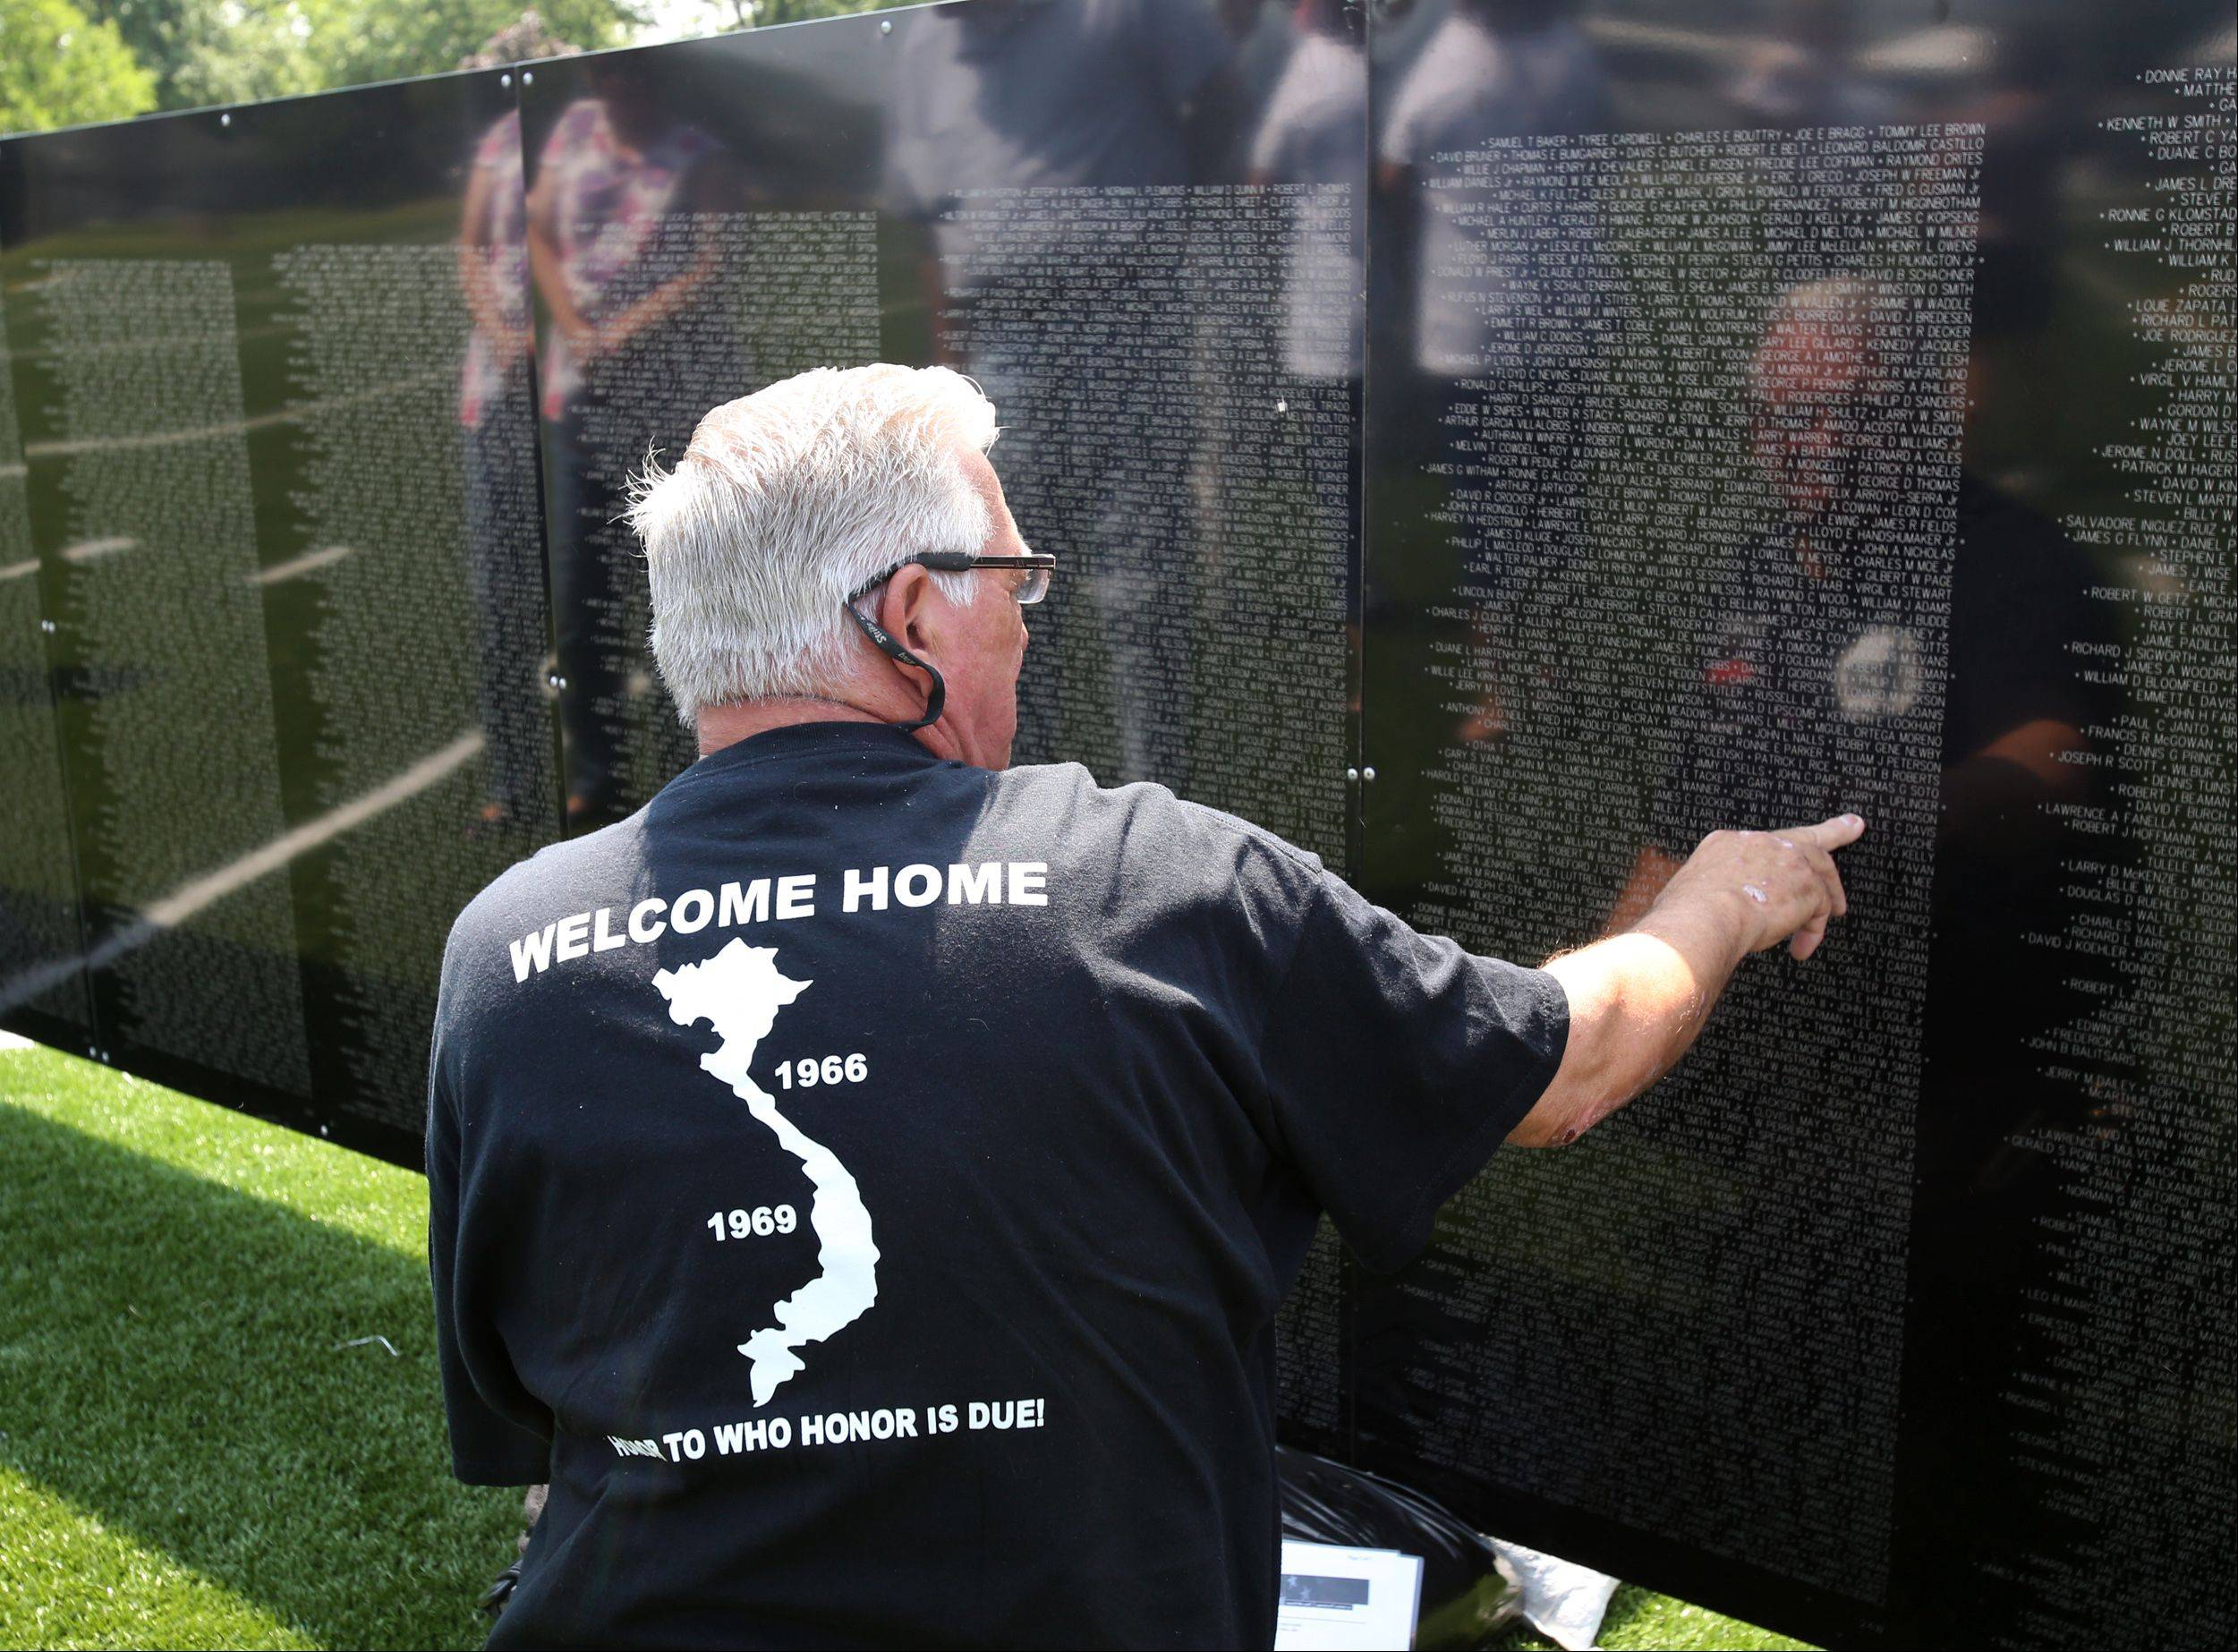 Helmut Stankevicius of Elmhurst is a former veteran of the U.S. Army�s 9th Division who honored the fallen Thursday during the opening ceremonies for The Wall That Heals, a traveling replica of the Vietnam Veterans Memorial displayed in Bensenville�s Redmond Park.